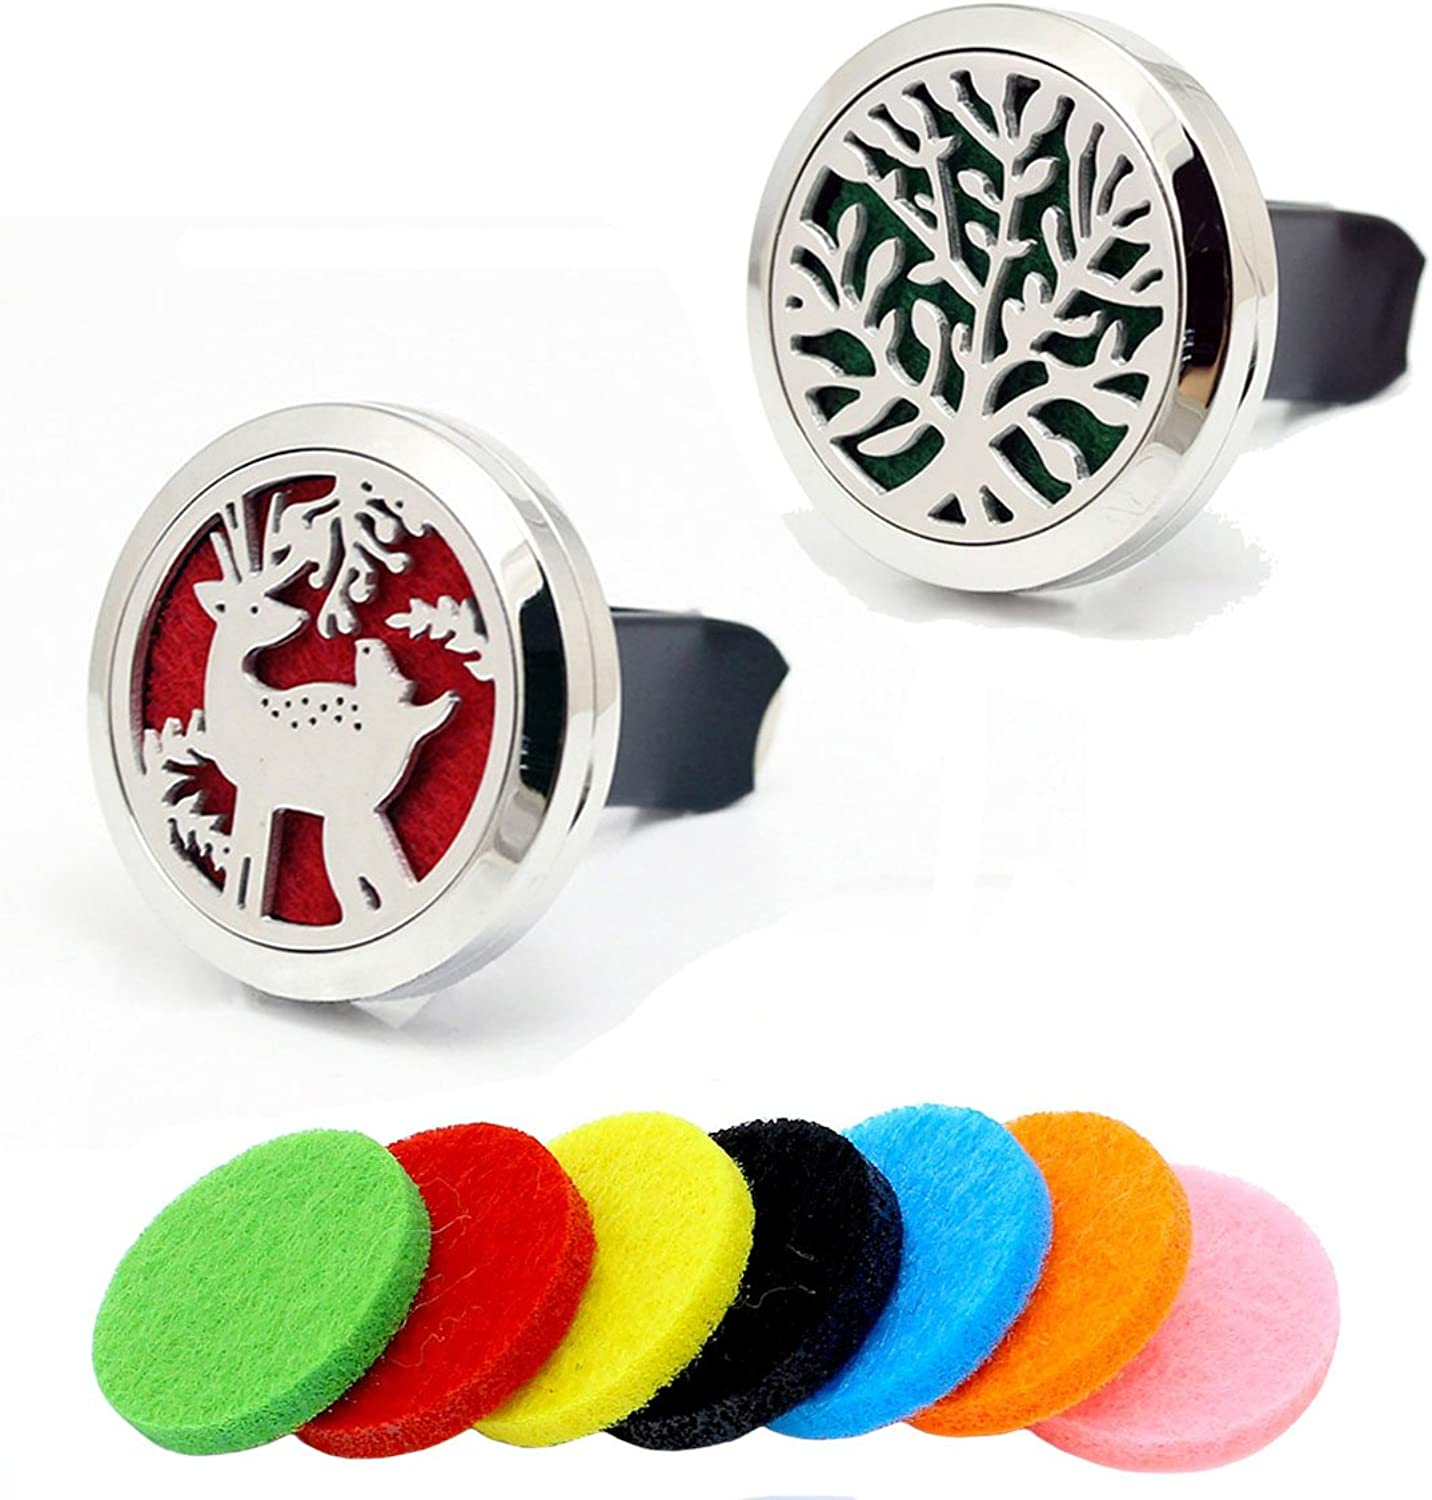 2pcs Tree Car Vent Clip Aromatherapy Essential Oil Stainless Steel Diffuser Locket With 7pcs Felt Pads